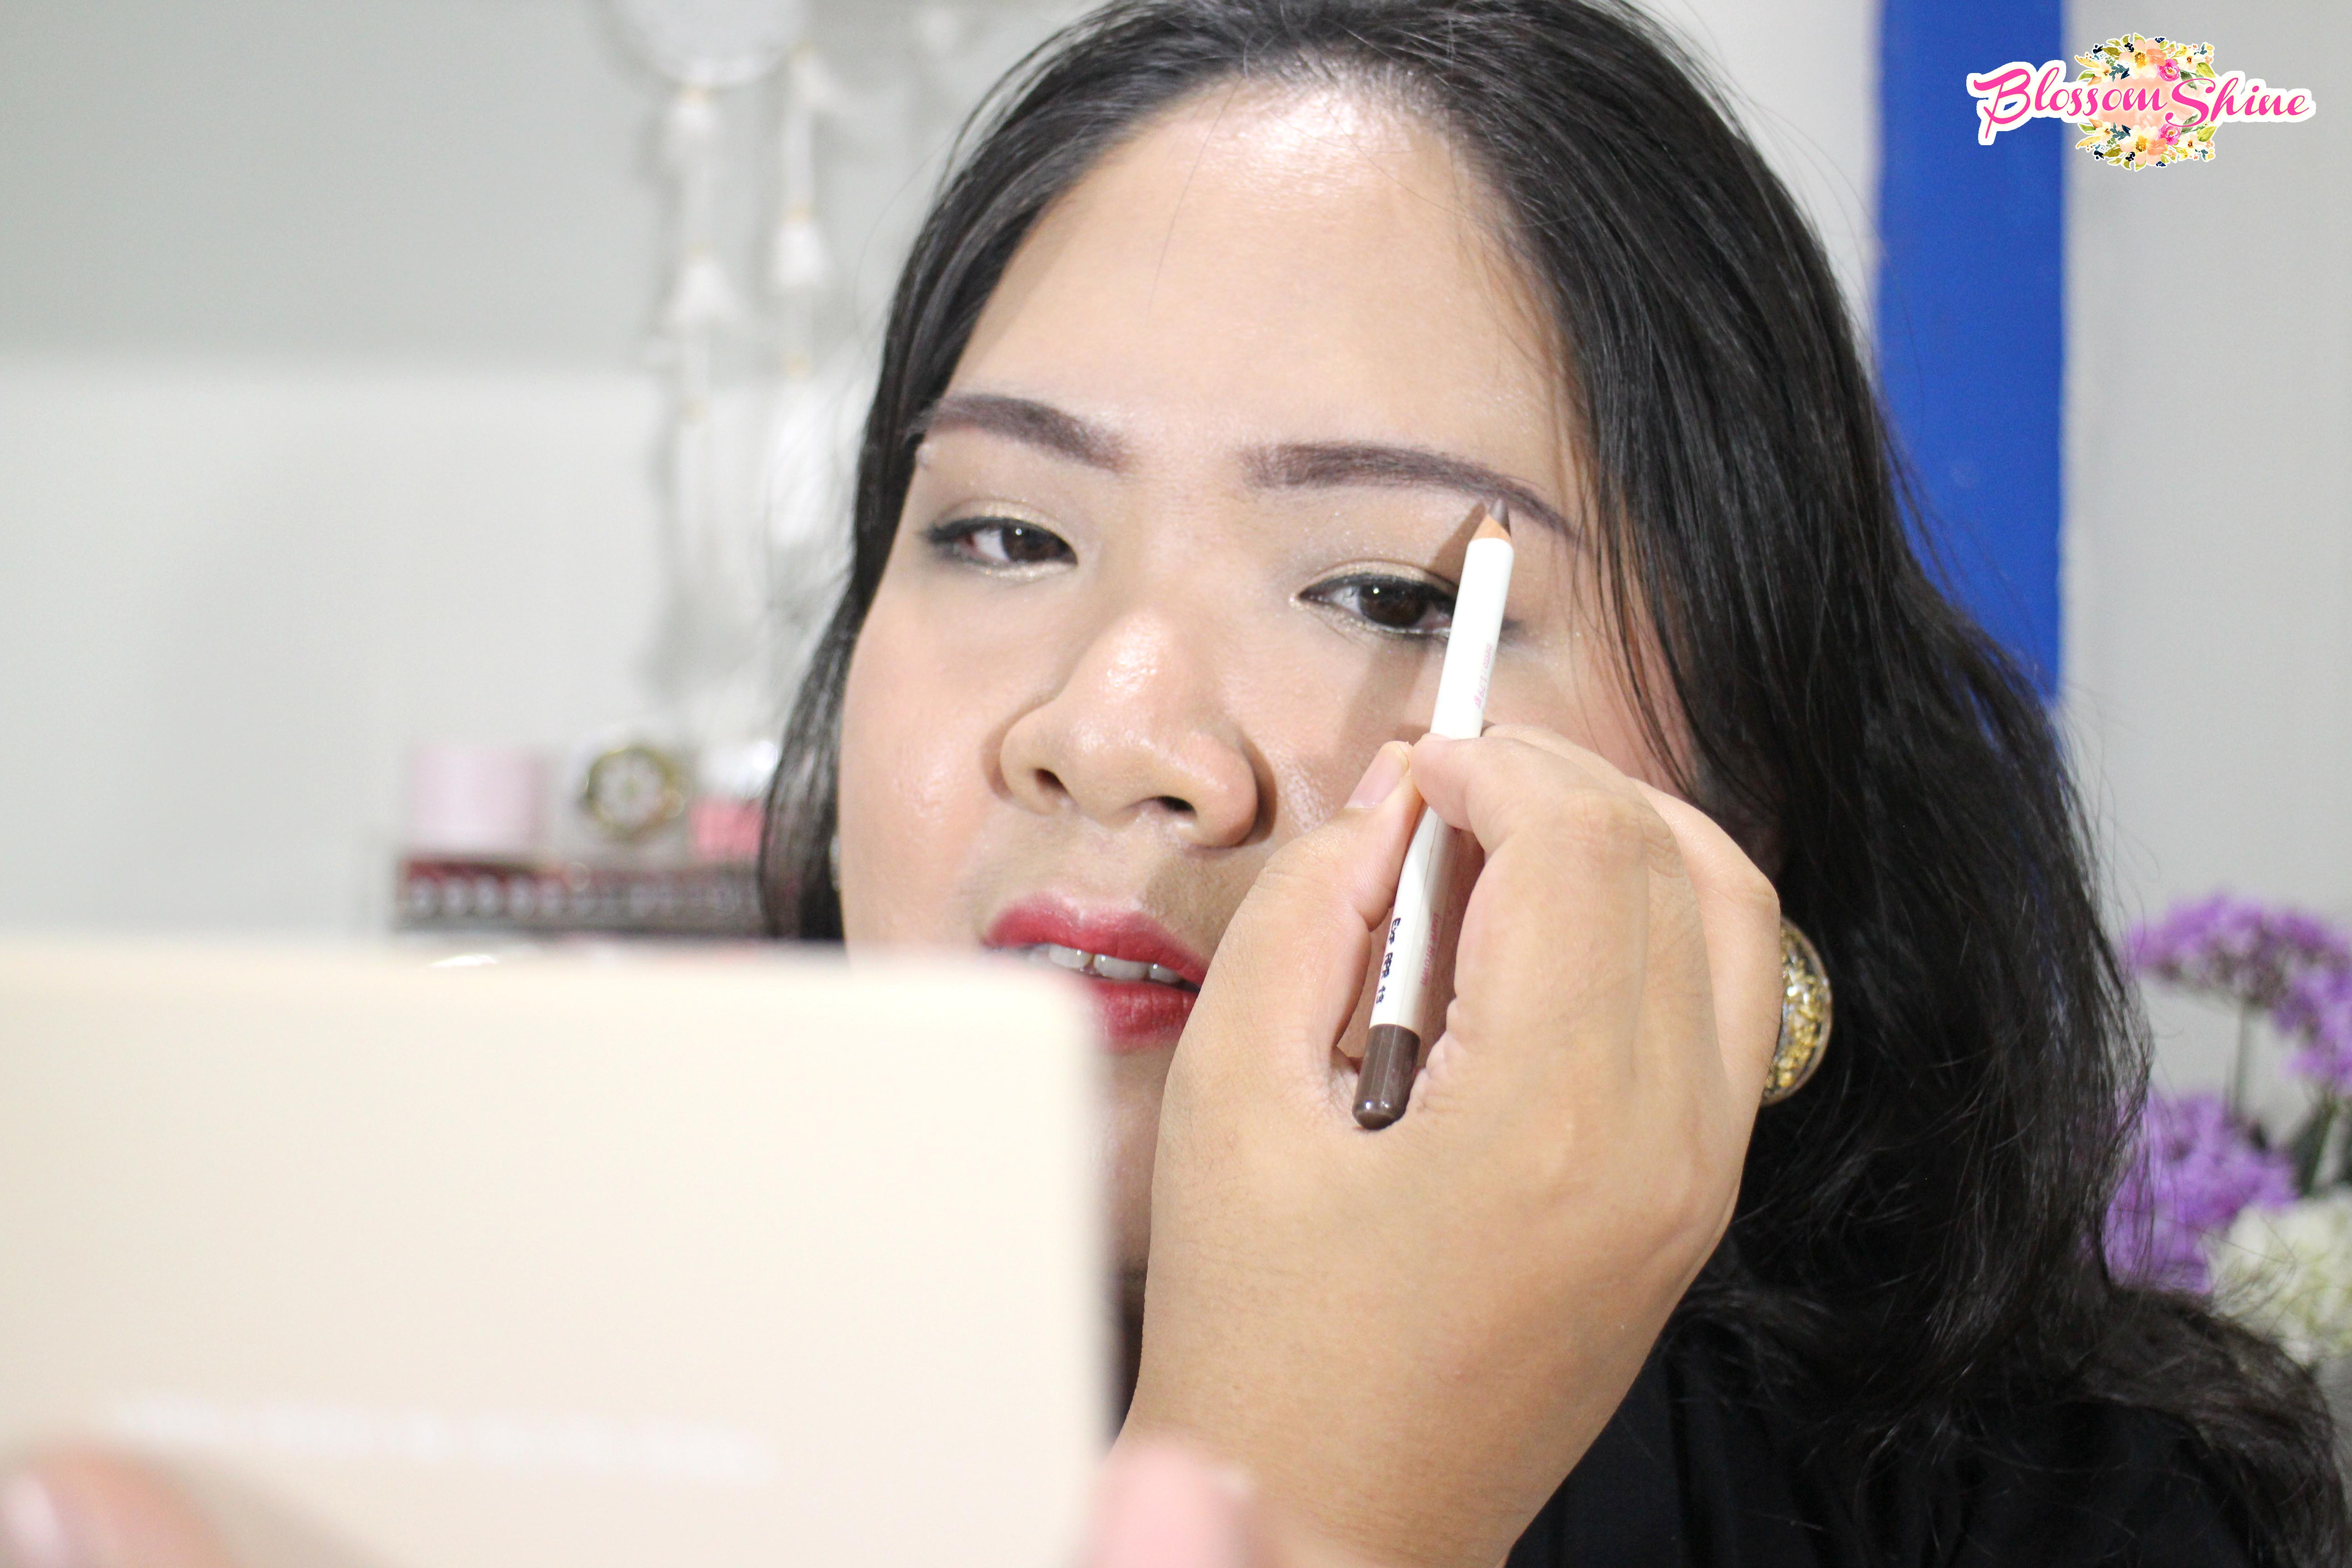 Review Pensil Alis Jill Beauty & Brow Tutorial